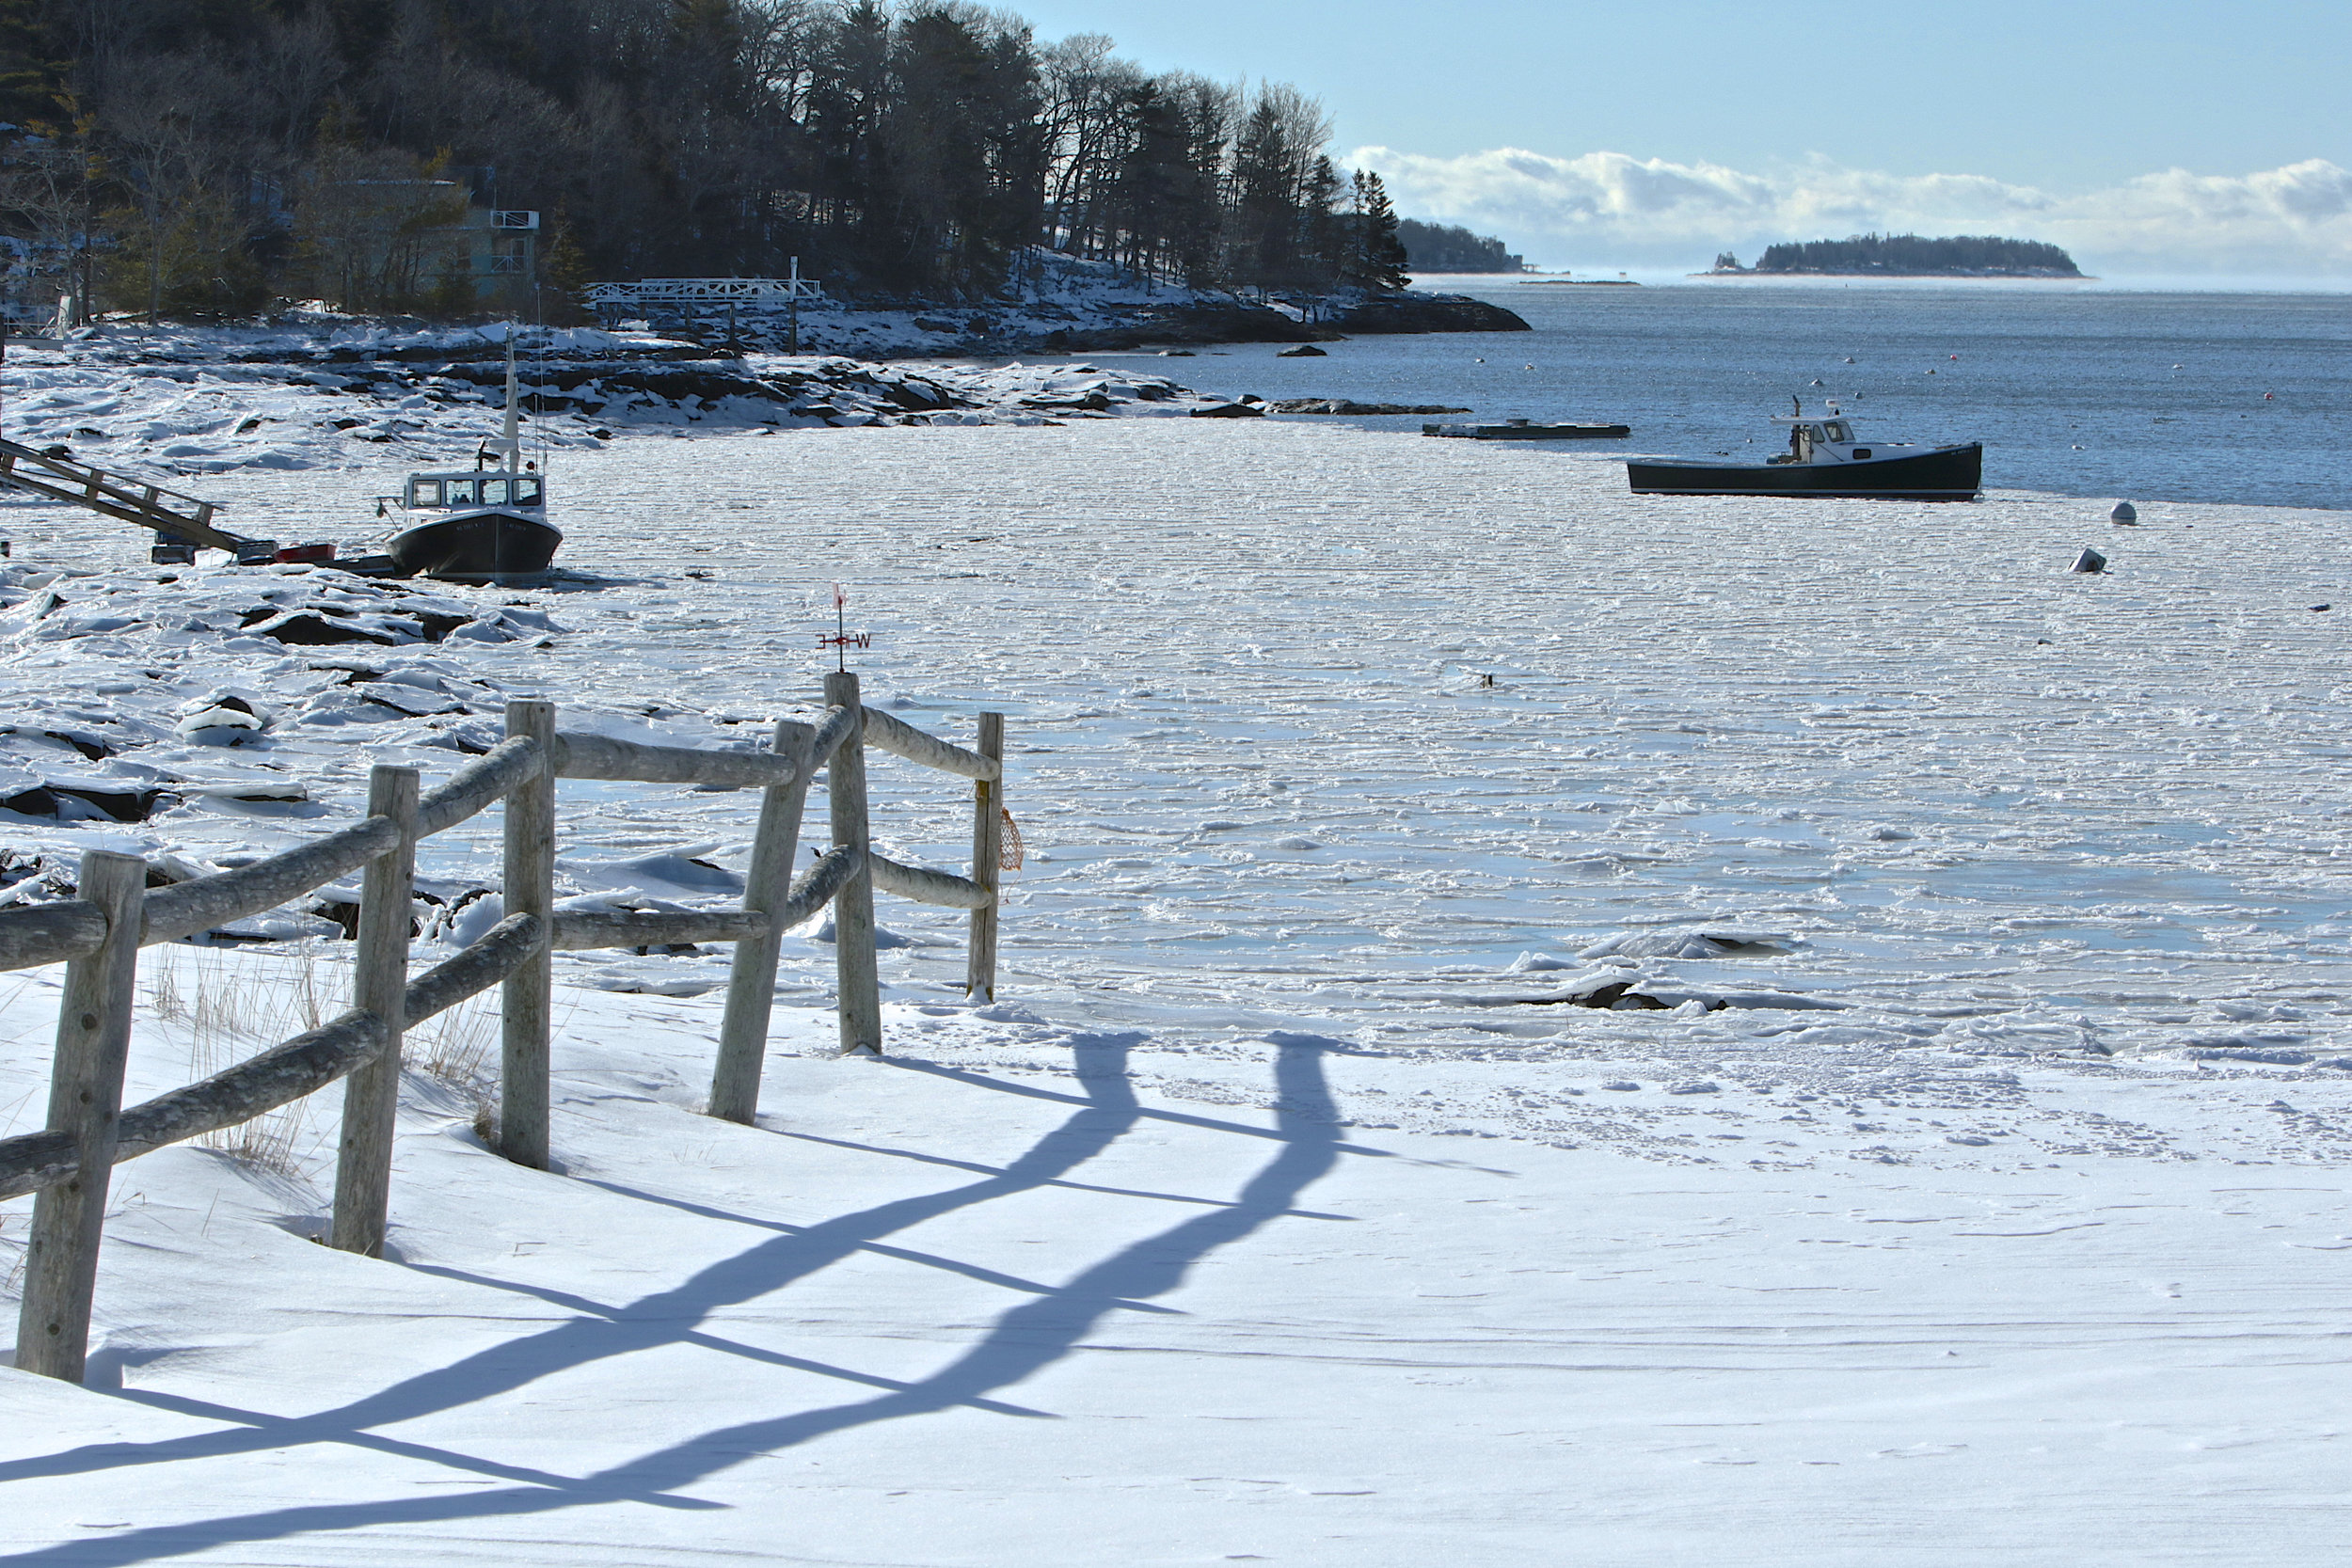 January: East Boothbay